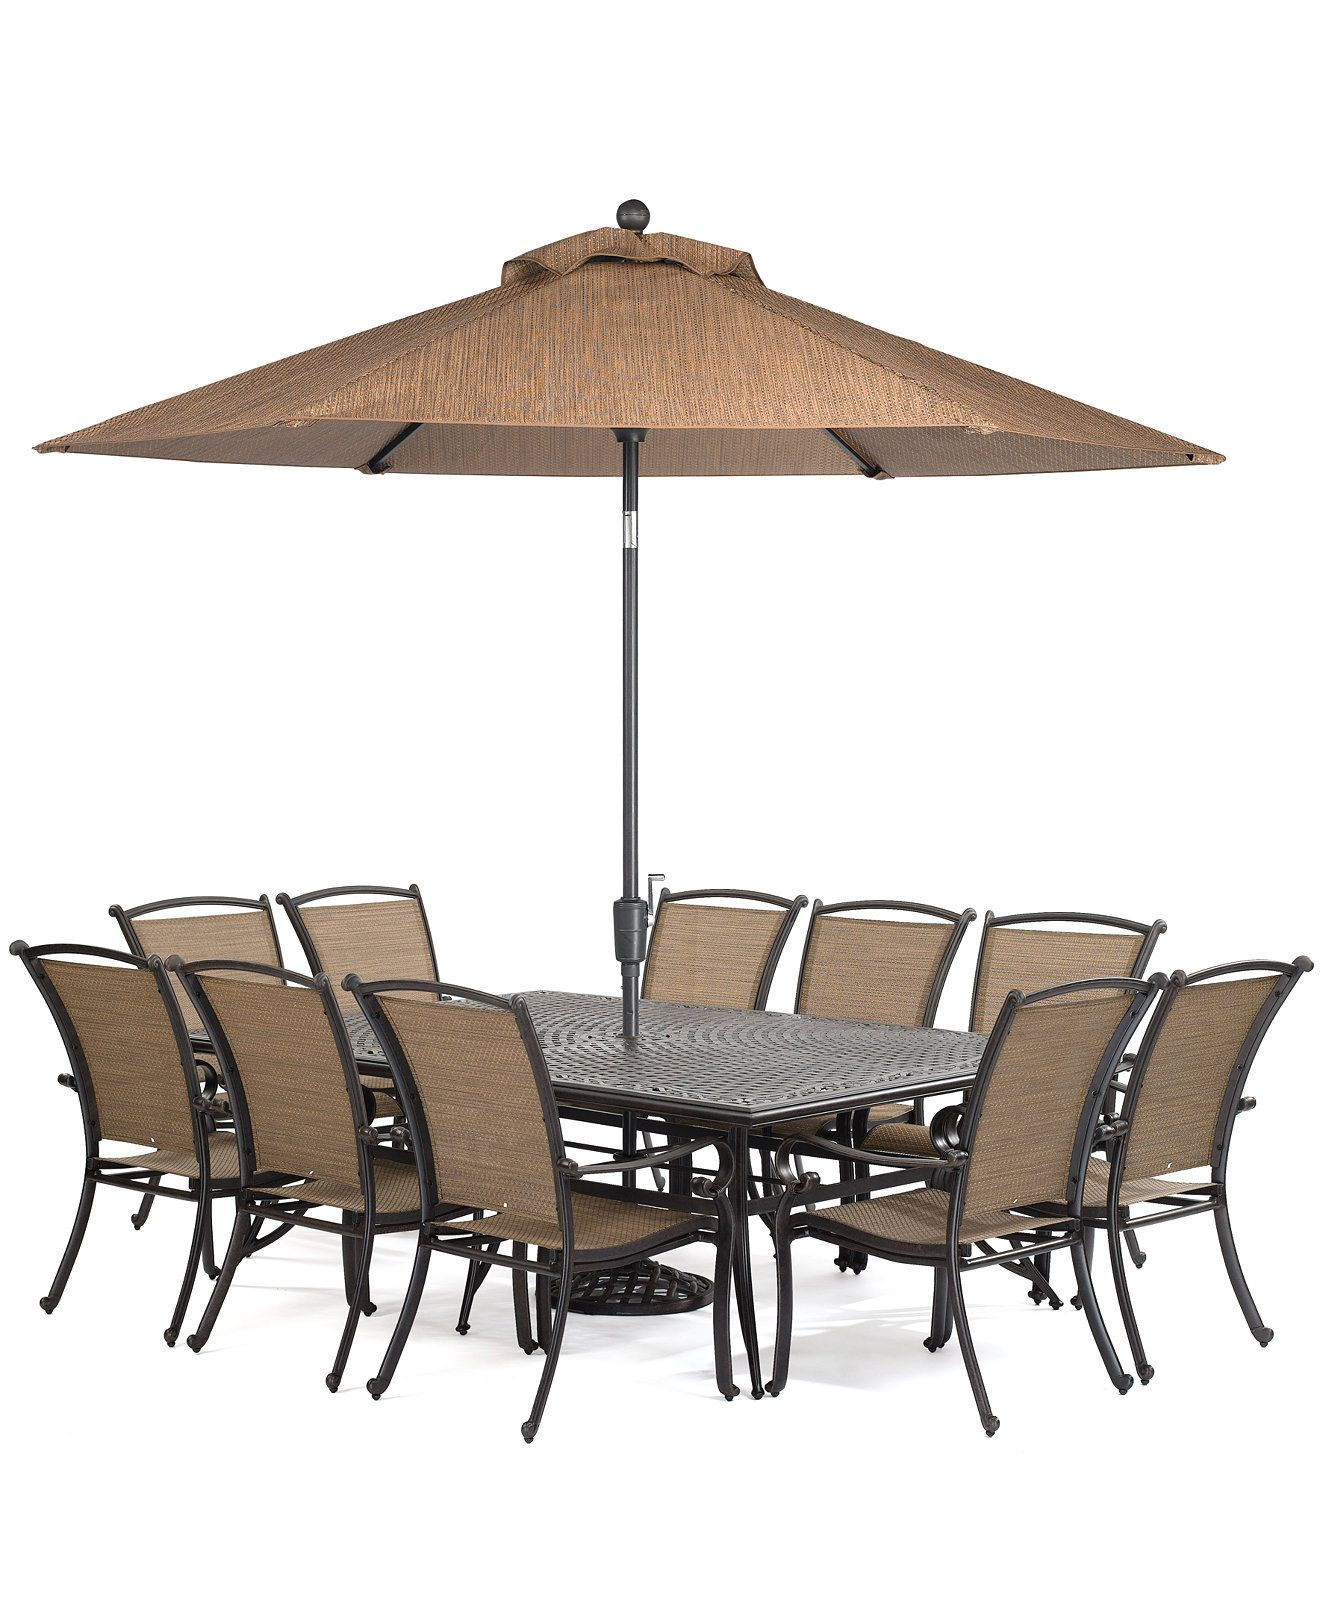 "Paradise Outdoor 11 Piece Set 84"" x 60"" Dining Table and 10"